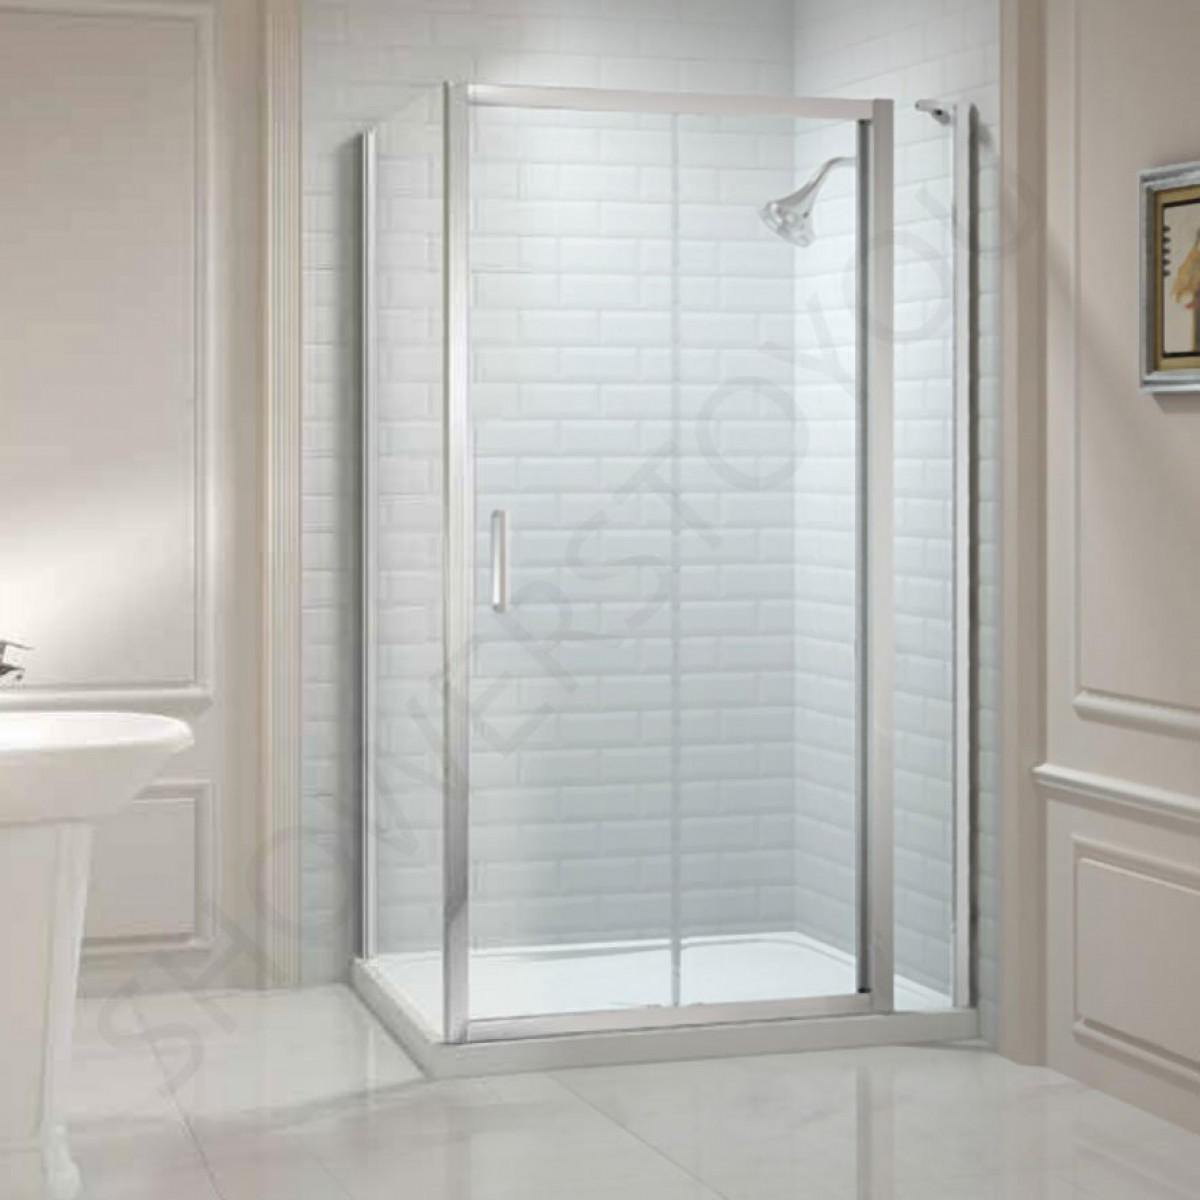 Merlyn 8 series 1200mm sliding shower door and inline panel for 1200mm shower door sliding